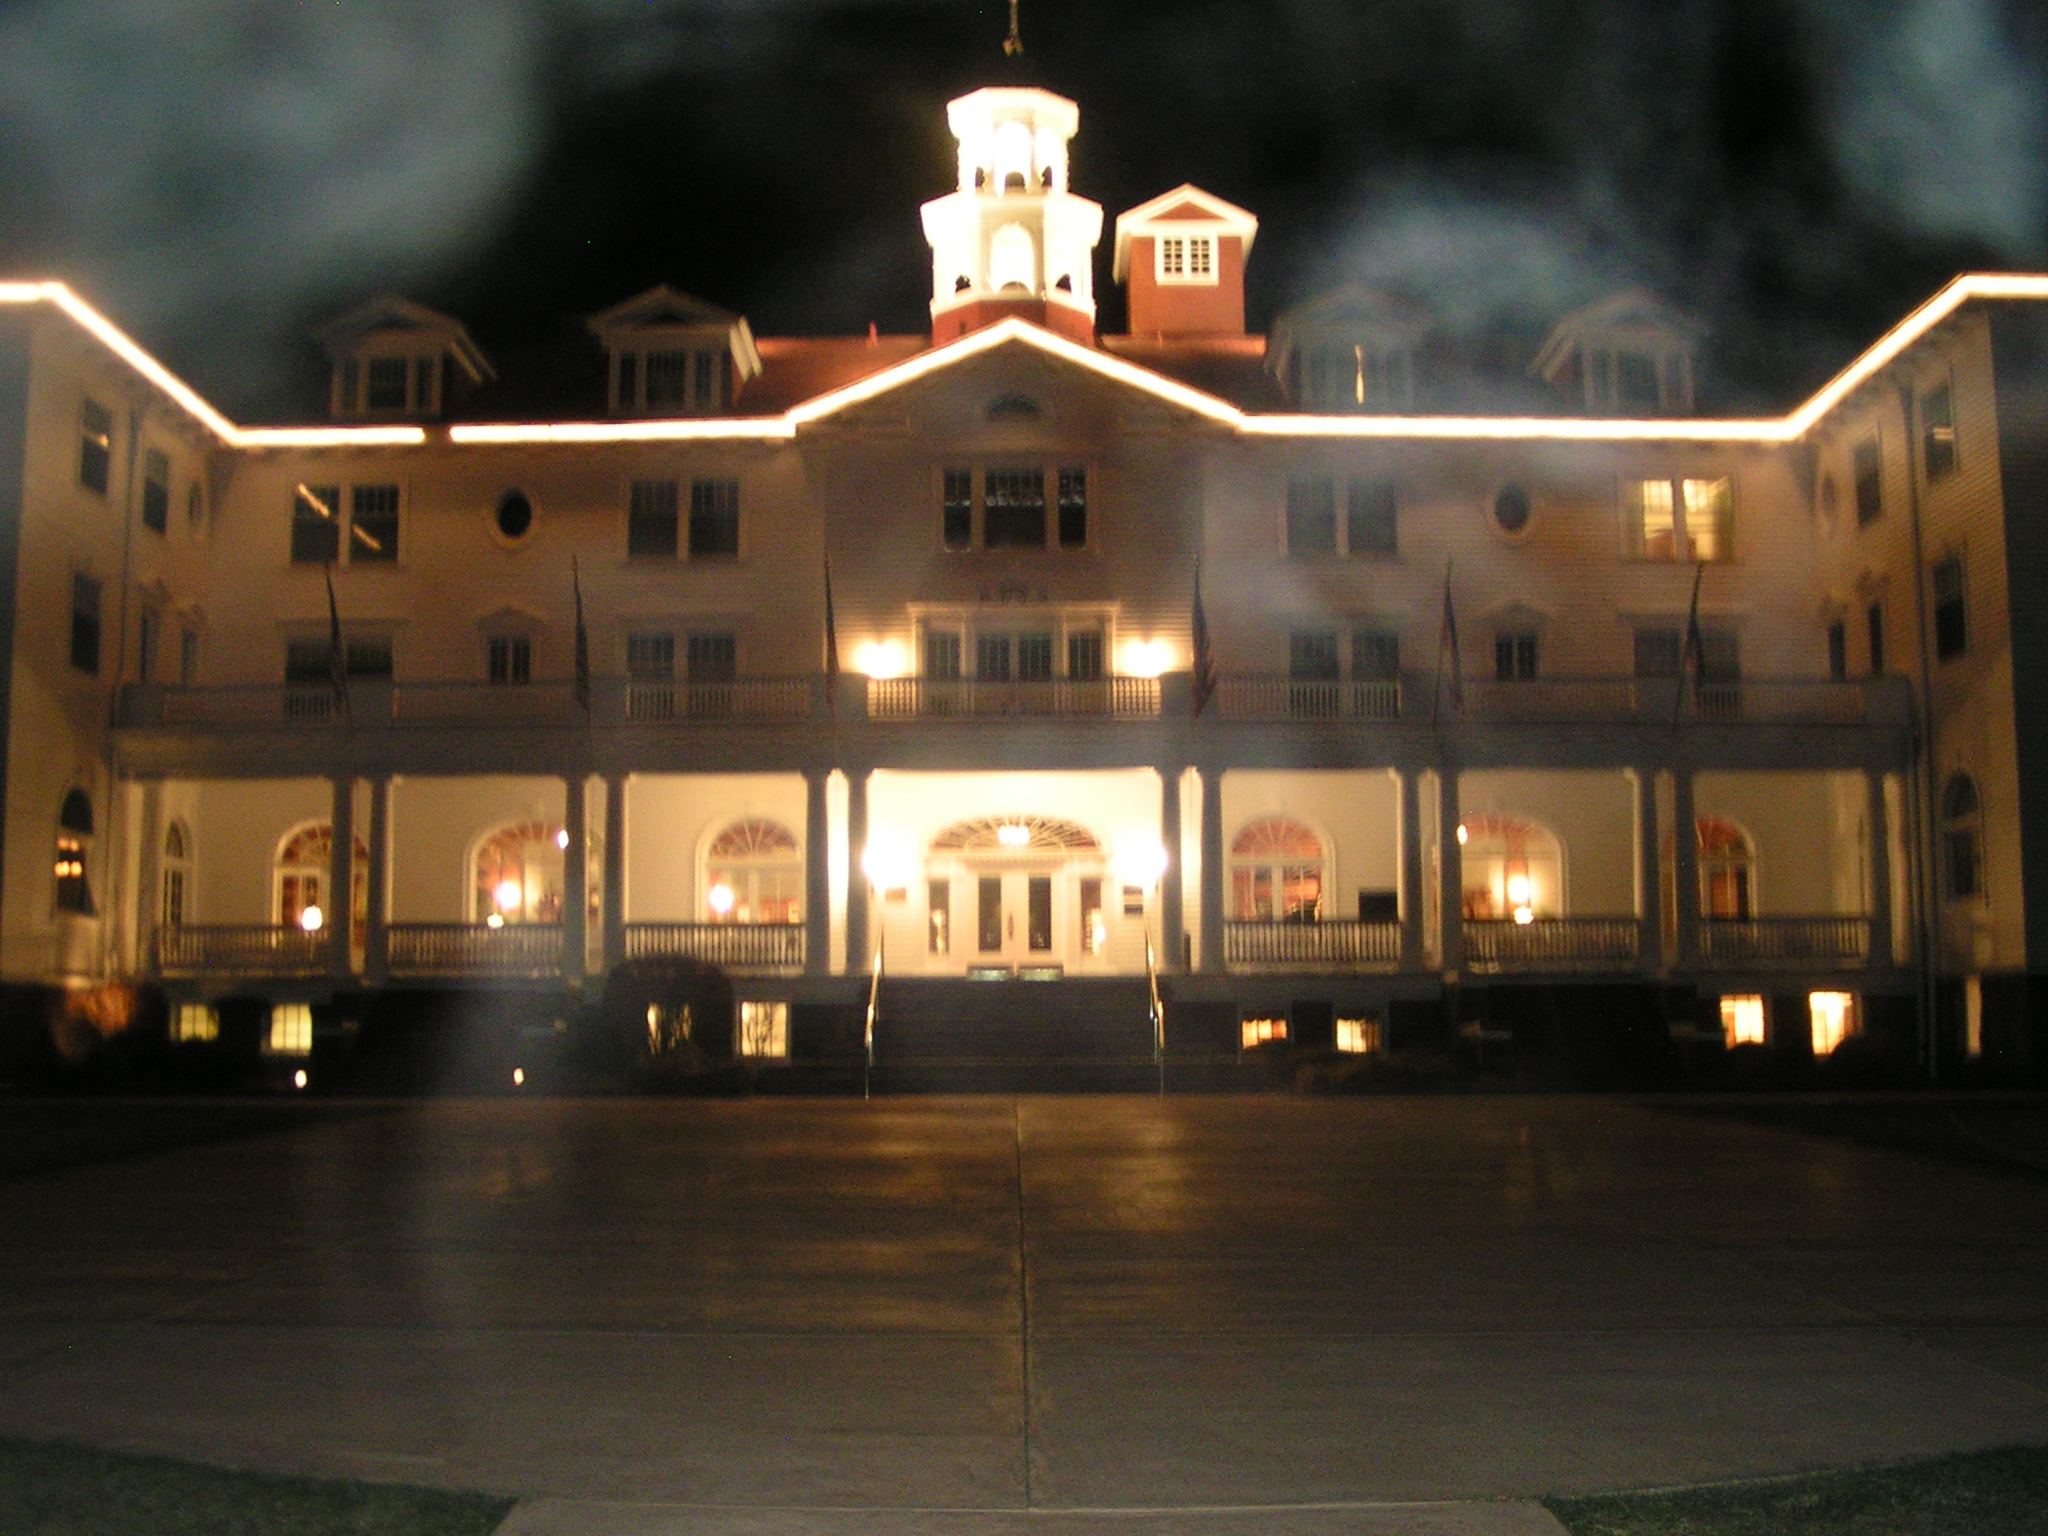 TheStanleyHotel_Night.jpg